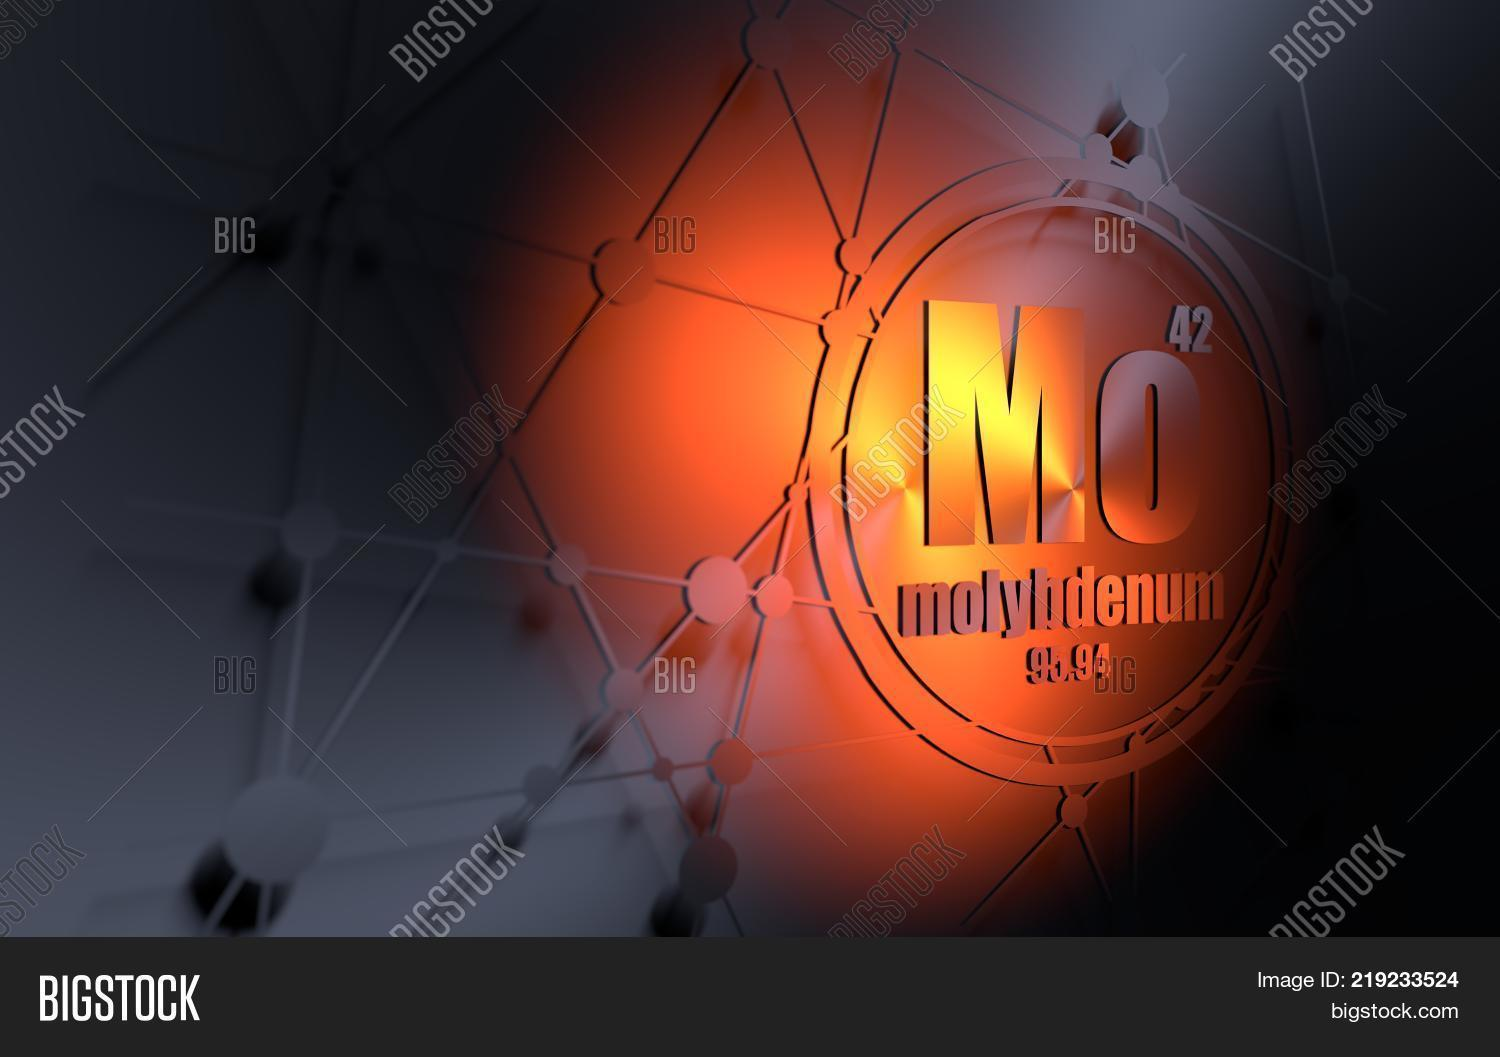 Molybdenum Chemical Image Photo Free Trial Bigstock